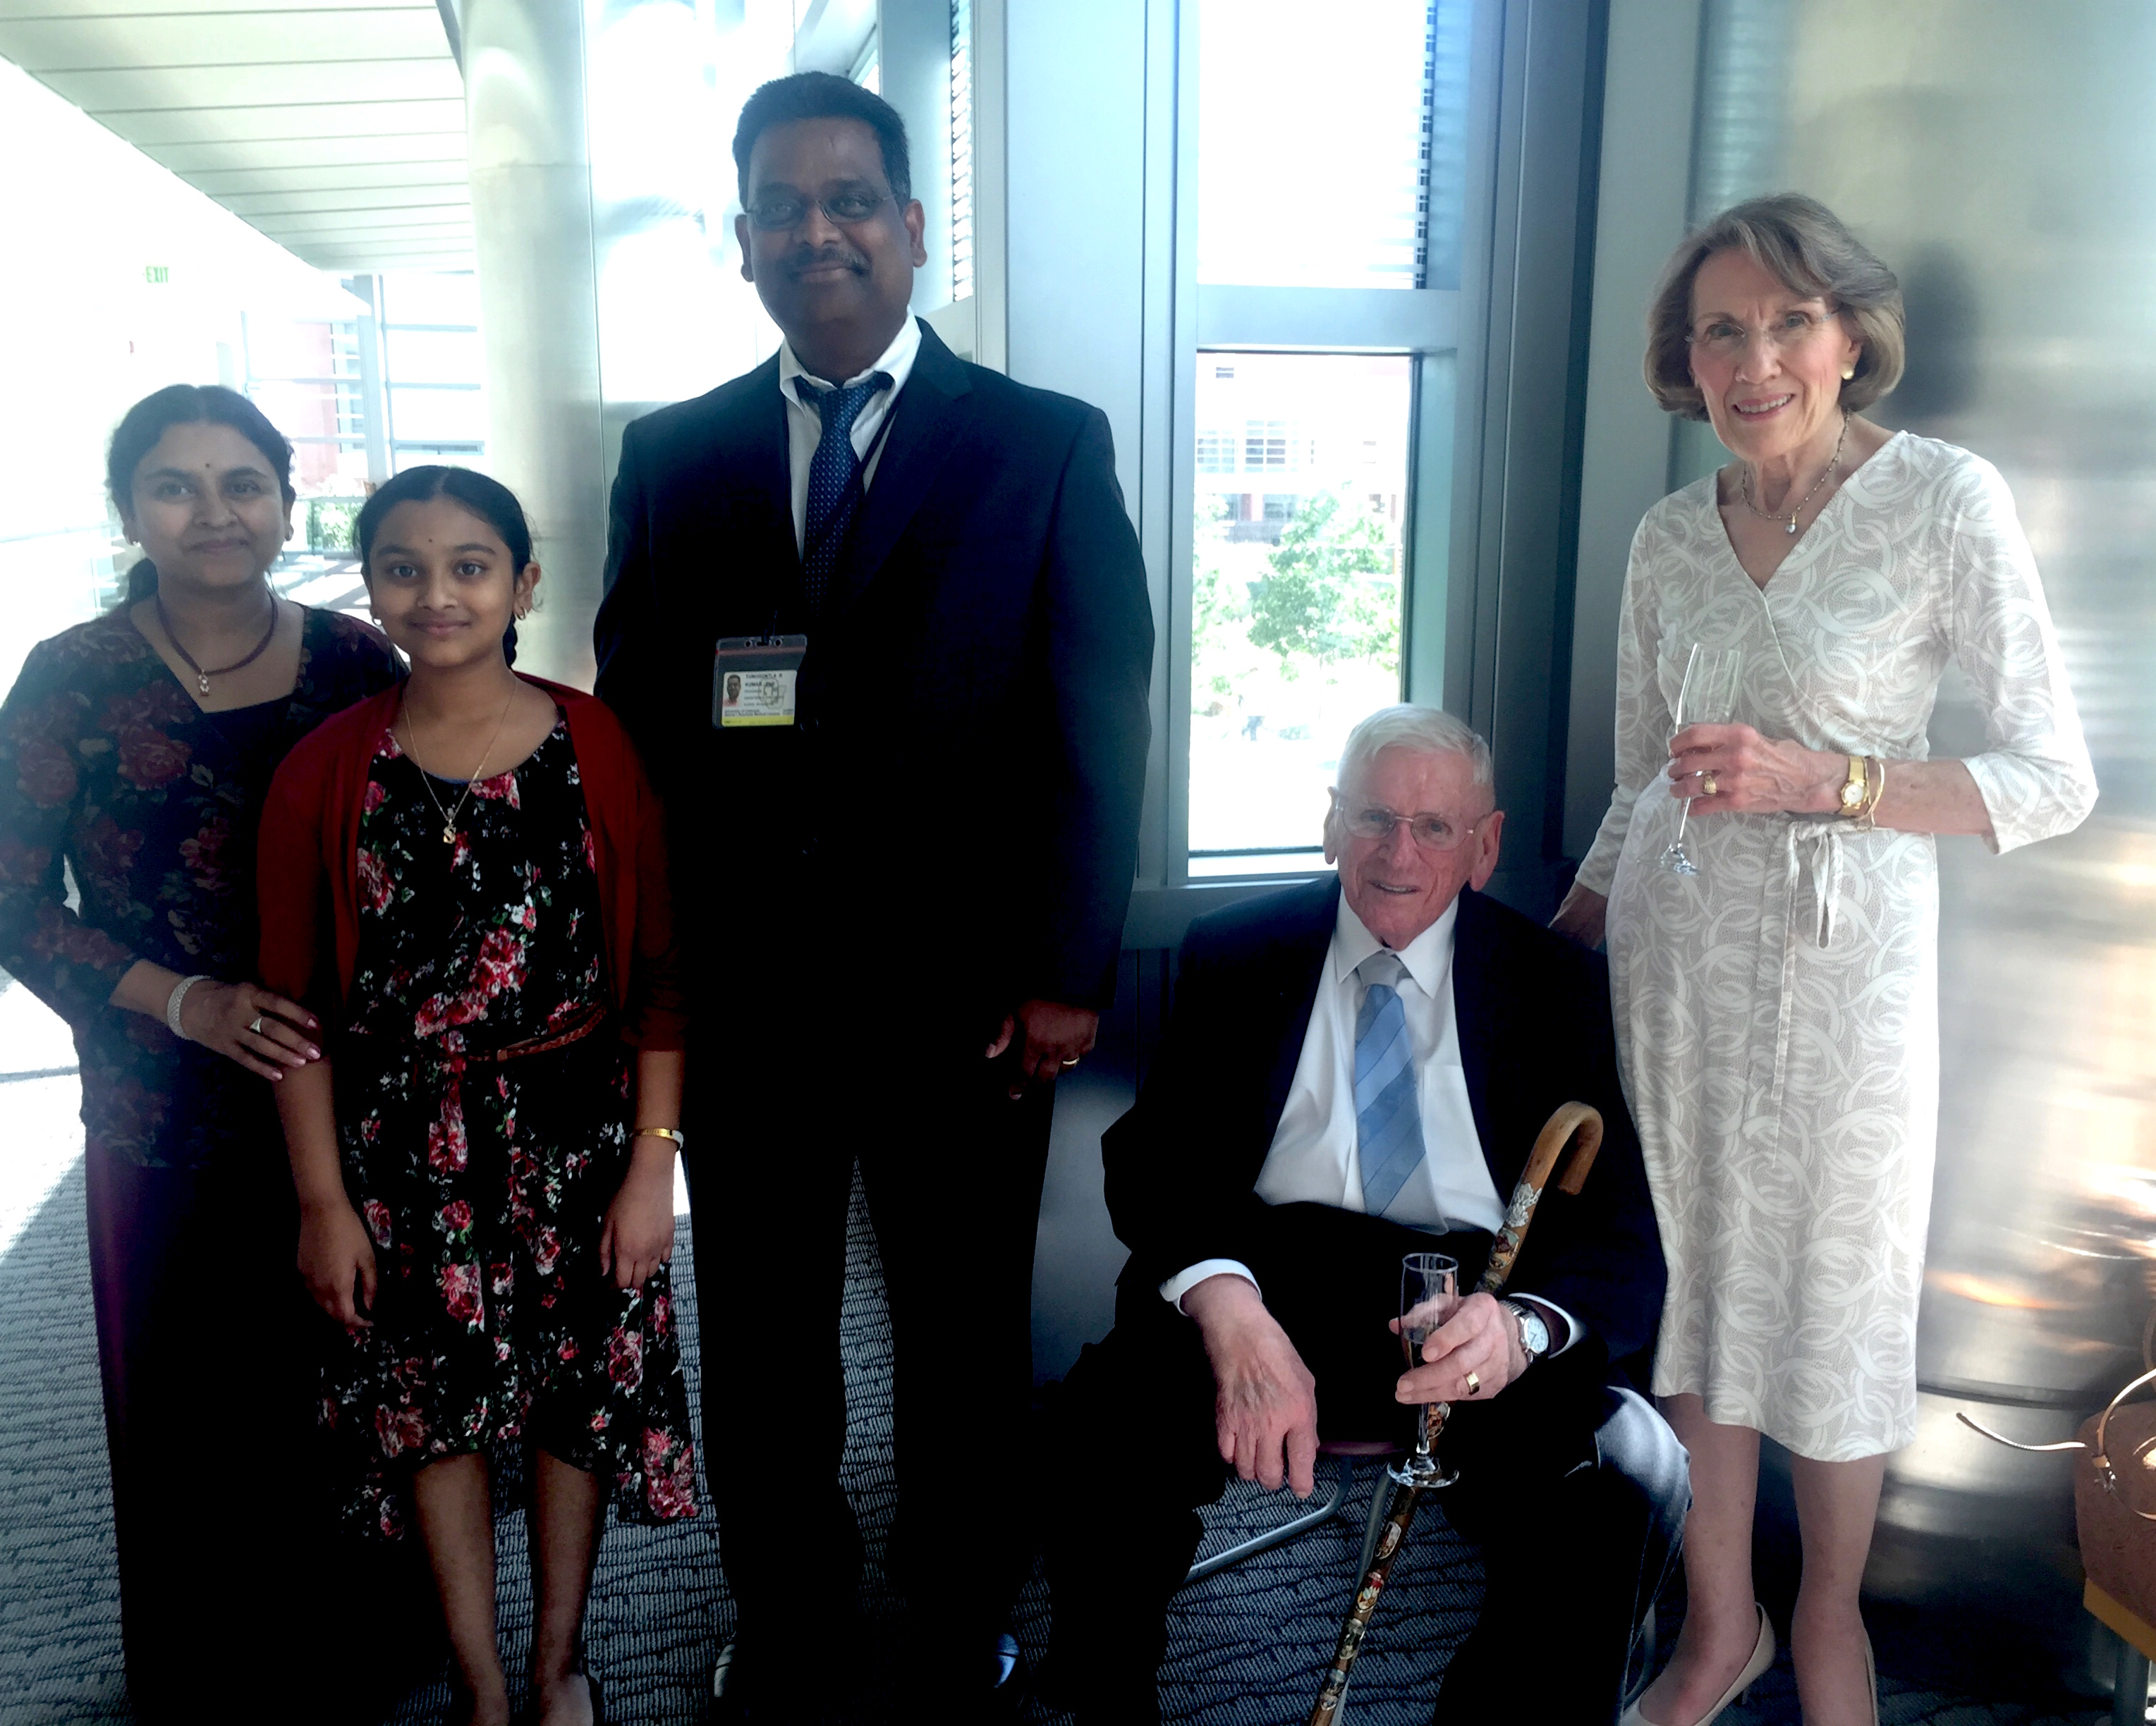 Dr. Kumar and his family together with Dr. and Mrs. Edgar Makowski in 2016.